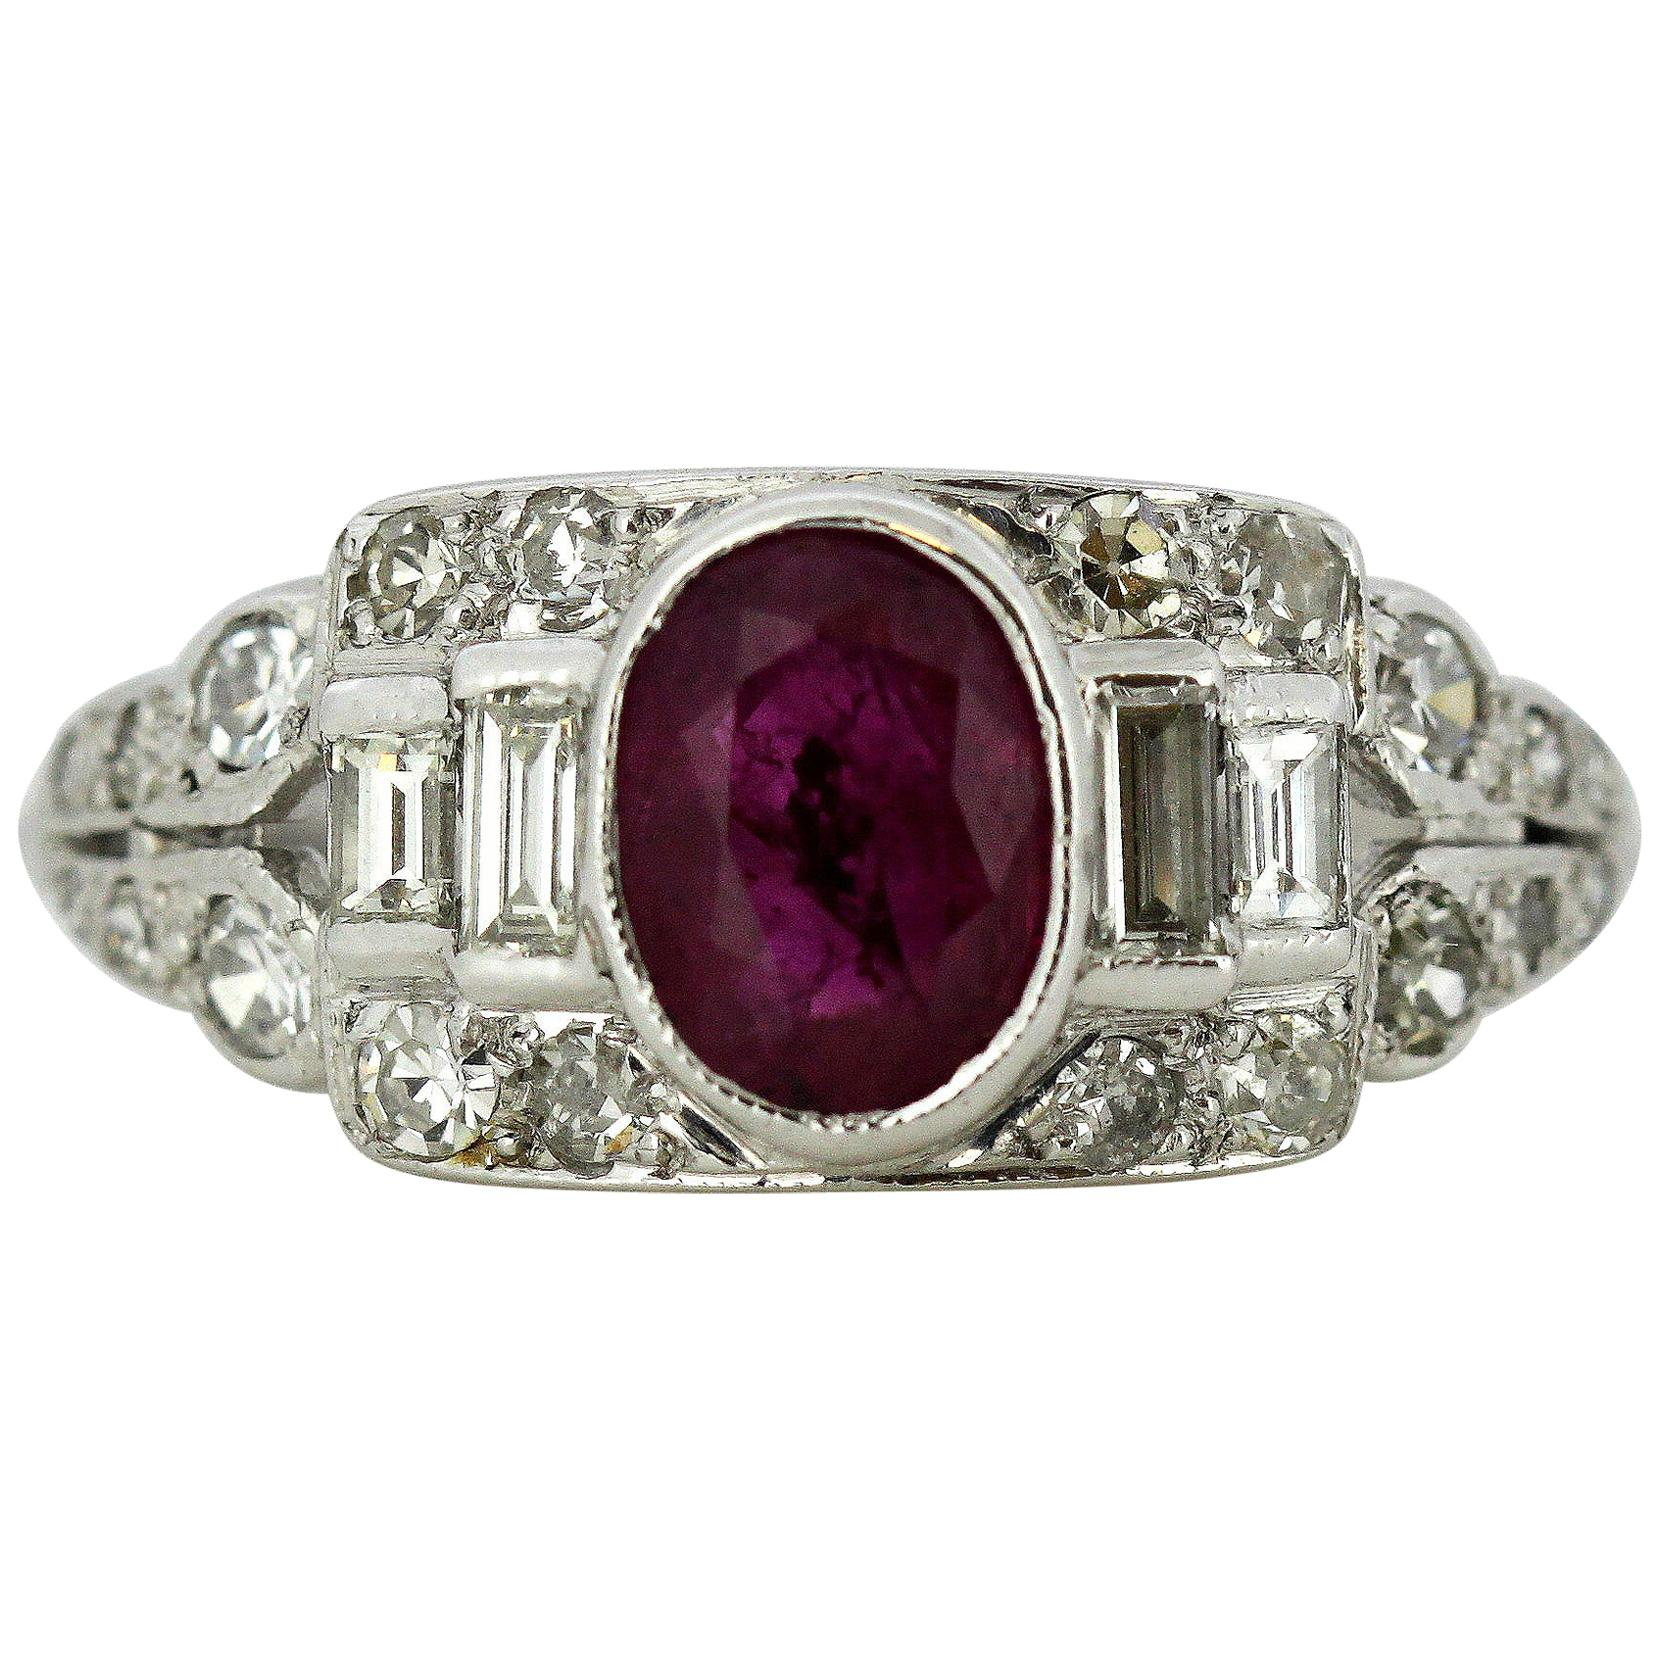 Vintage 18 Karat White Gold Ladies Ring with Natural Ruby and Diamonds, 1970s